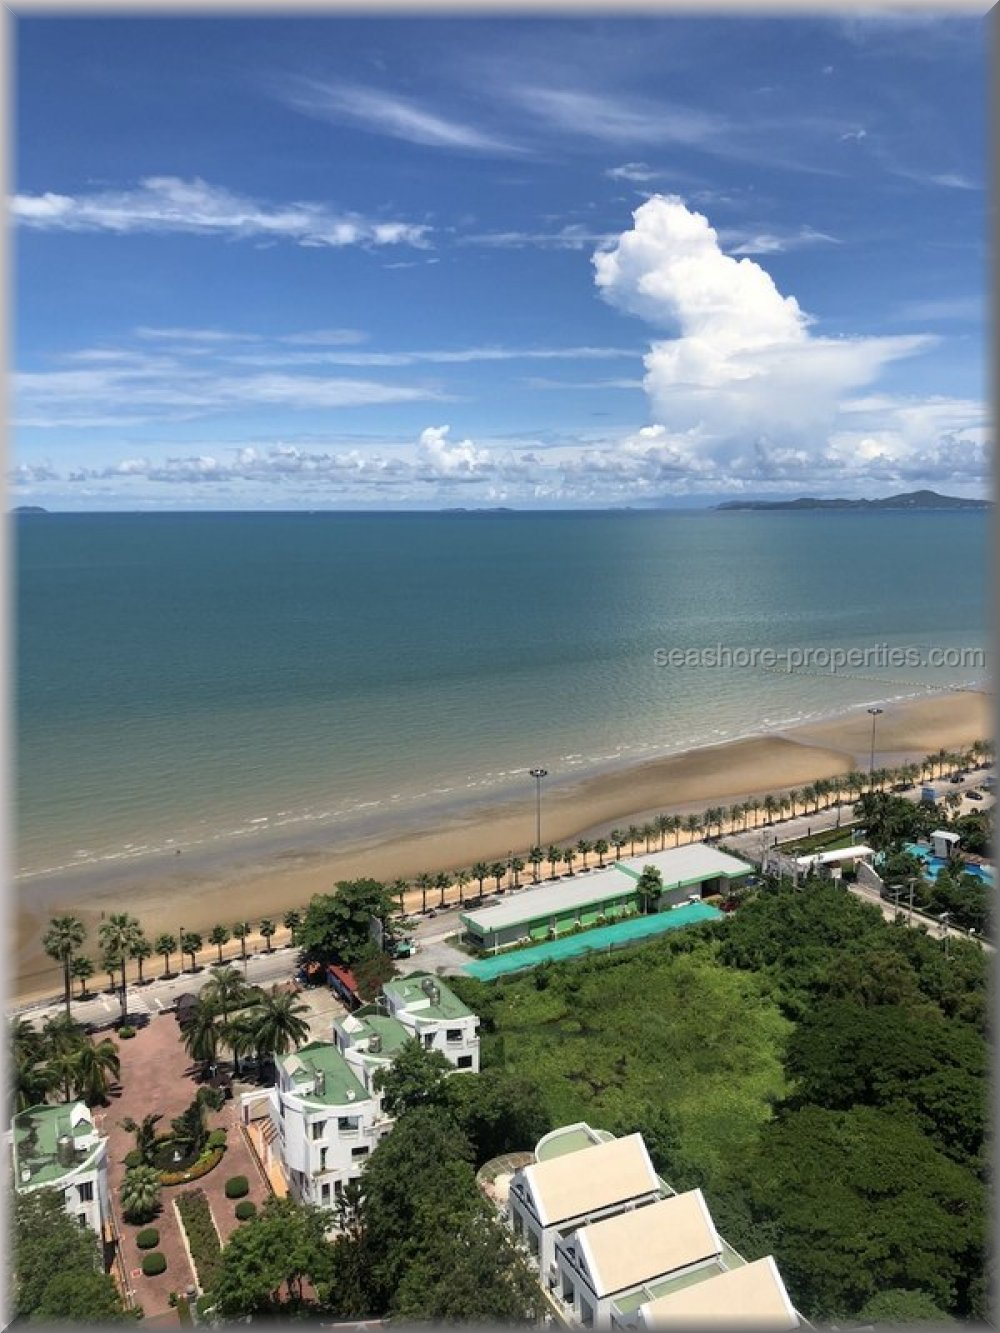 Seashore Properties (Thailand) Co. Ltd. metro jomtein condotel   for sale in Jomtien Pattaya